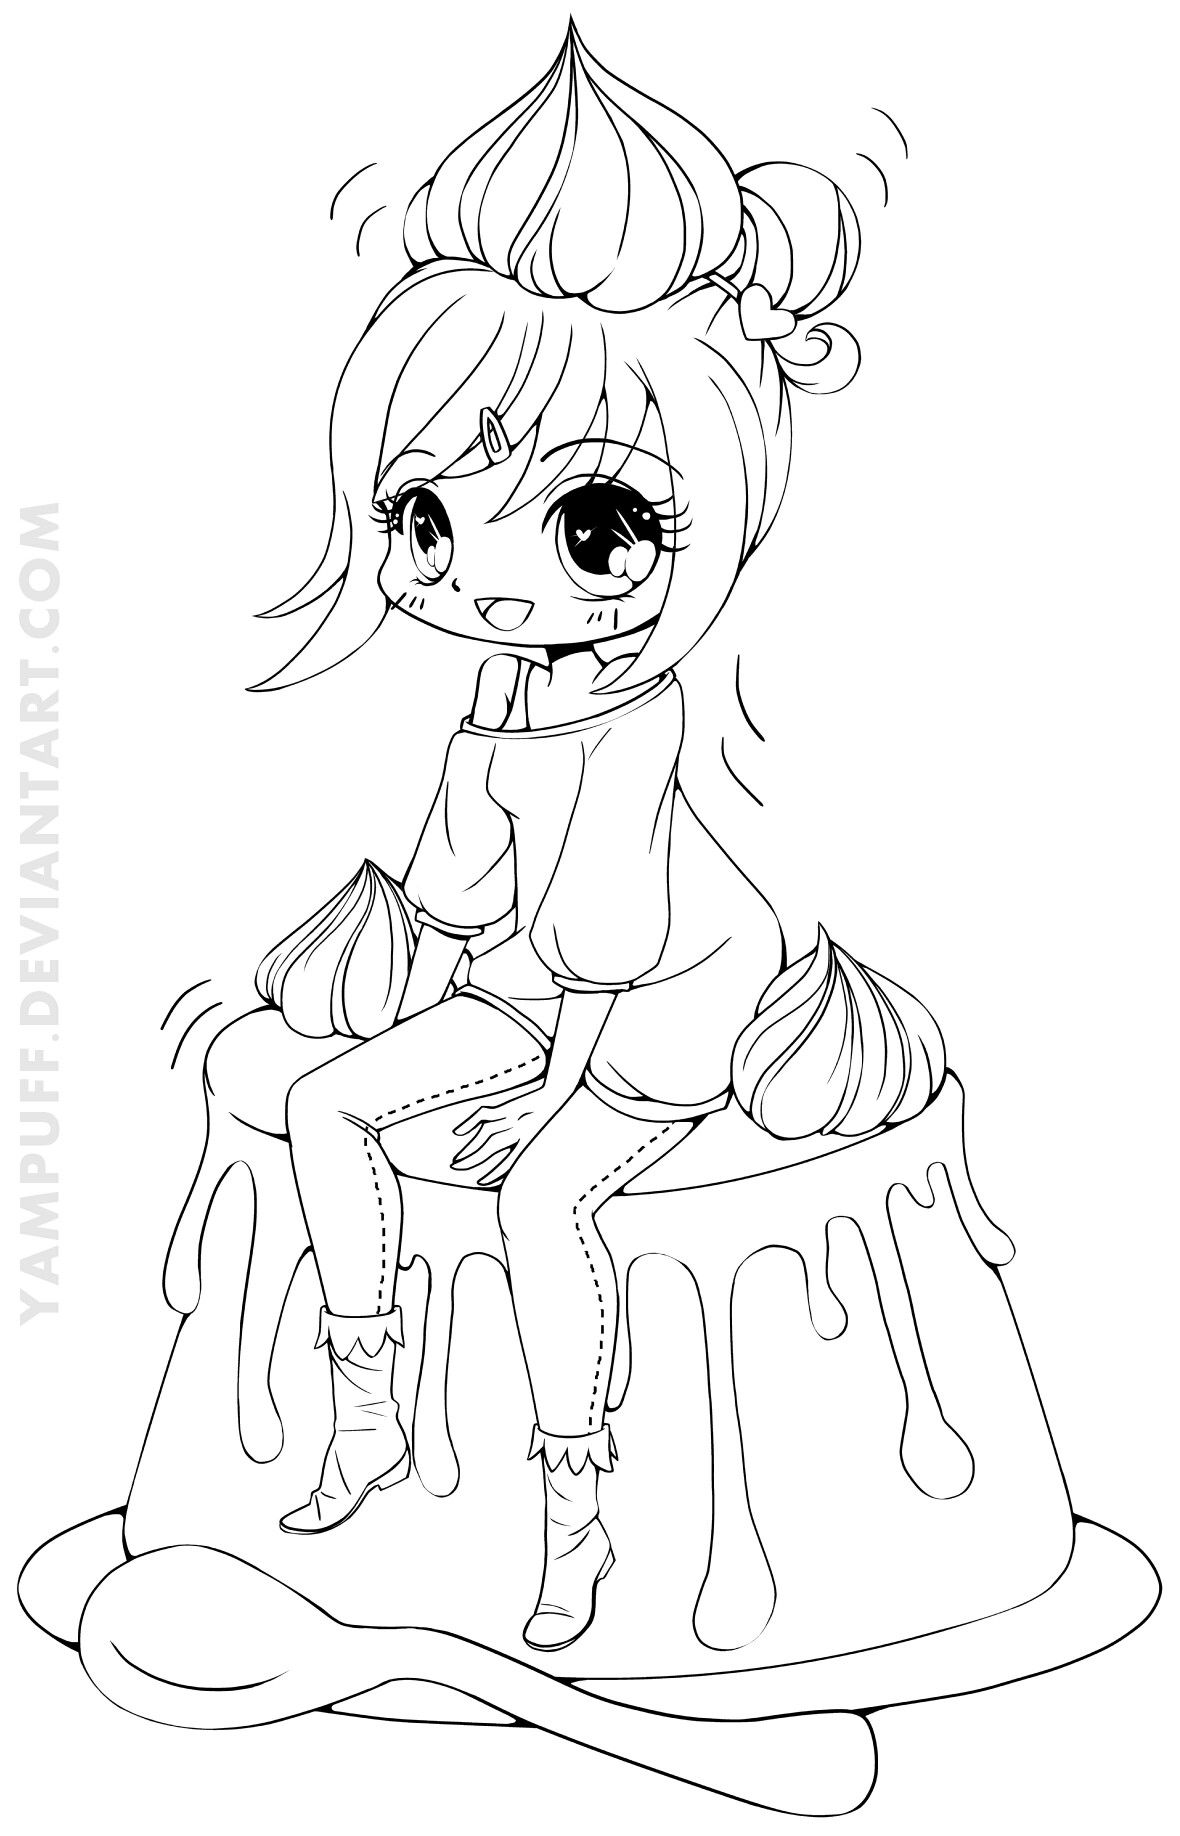 coloring pages anime chibi chibi lollipop girl coloring page free printable anime chibi coloring pages